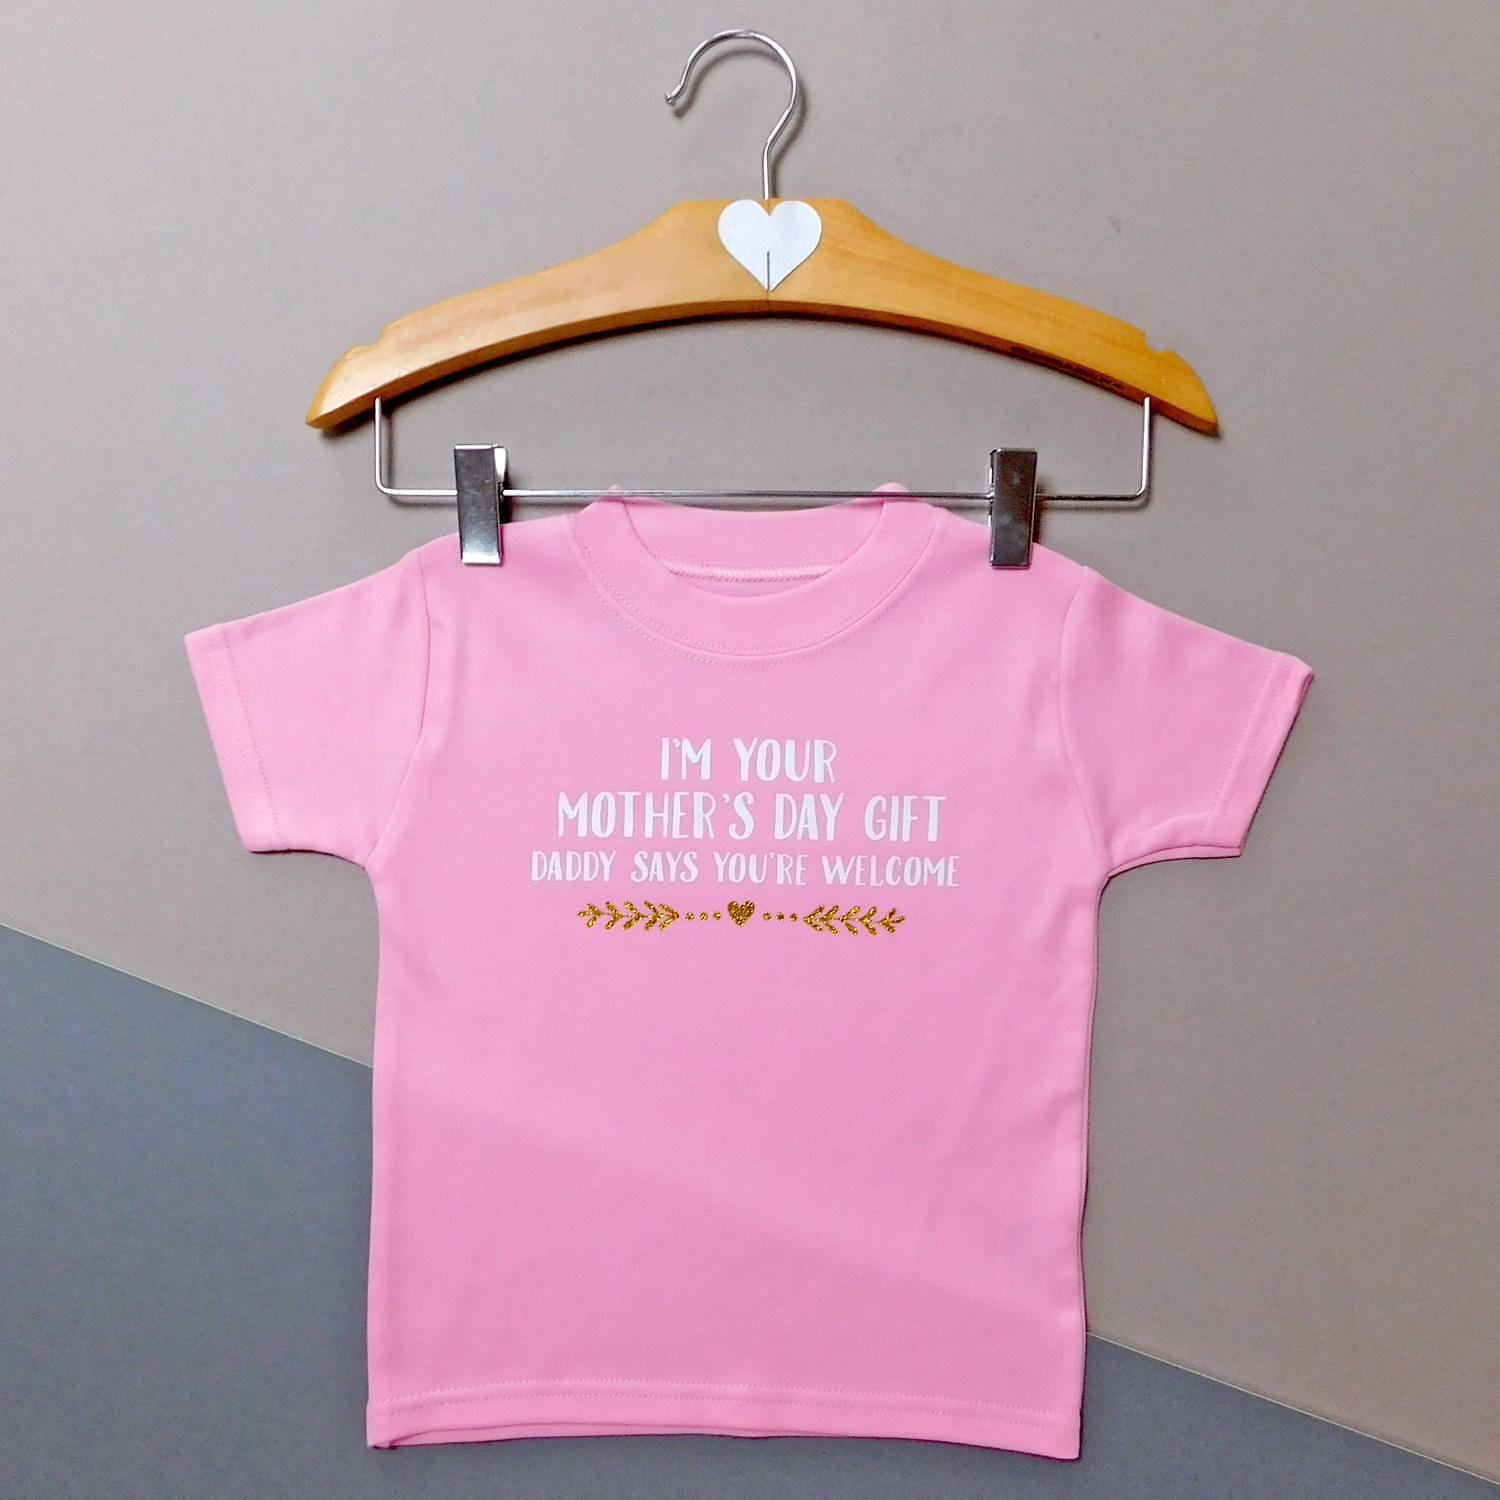 d31d67ec1 I'm Your Mother's Day Gift Cheeky Baby/ Child's T-Shirt, From Dad to Mum,  From Baby to Mum, From Child to Mum by AllihopaGifts on Etsy